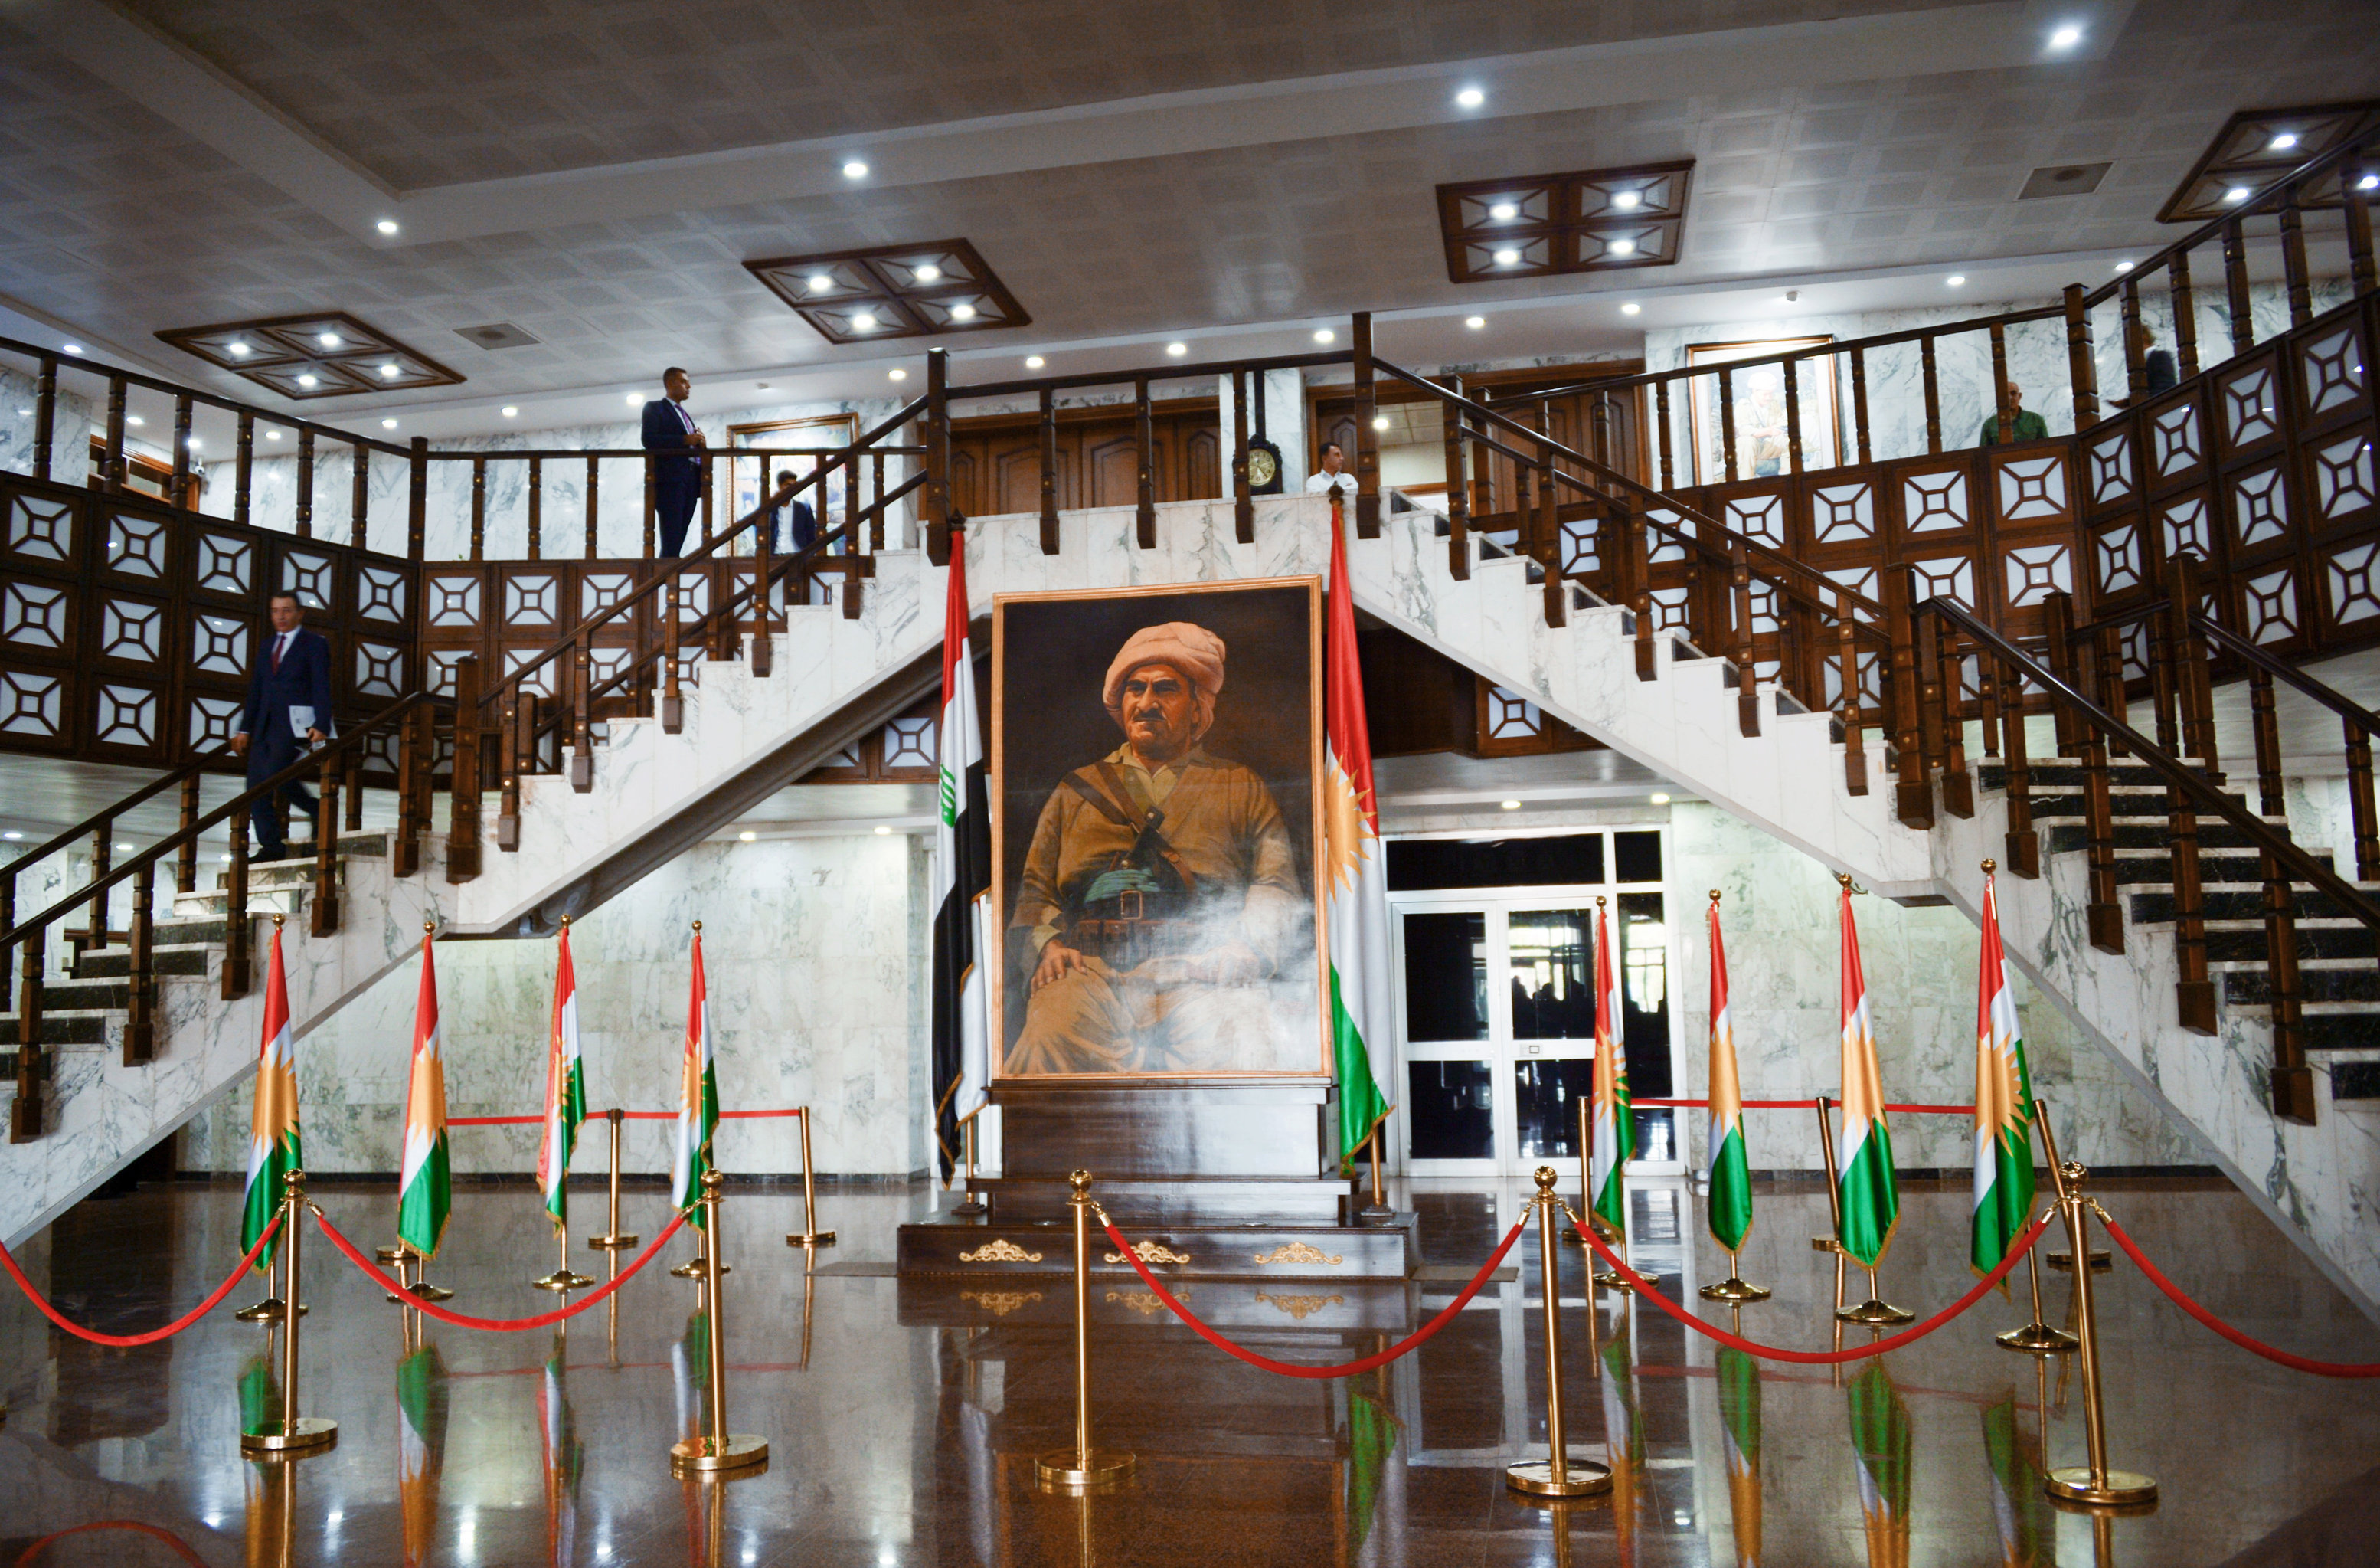 The Iraqi Kurdistan parliament building